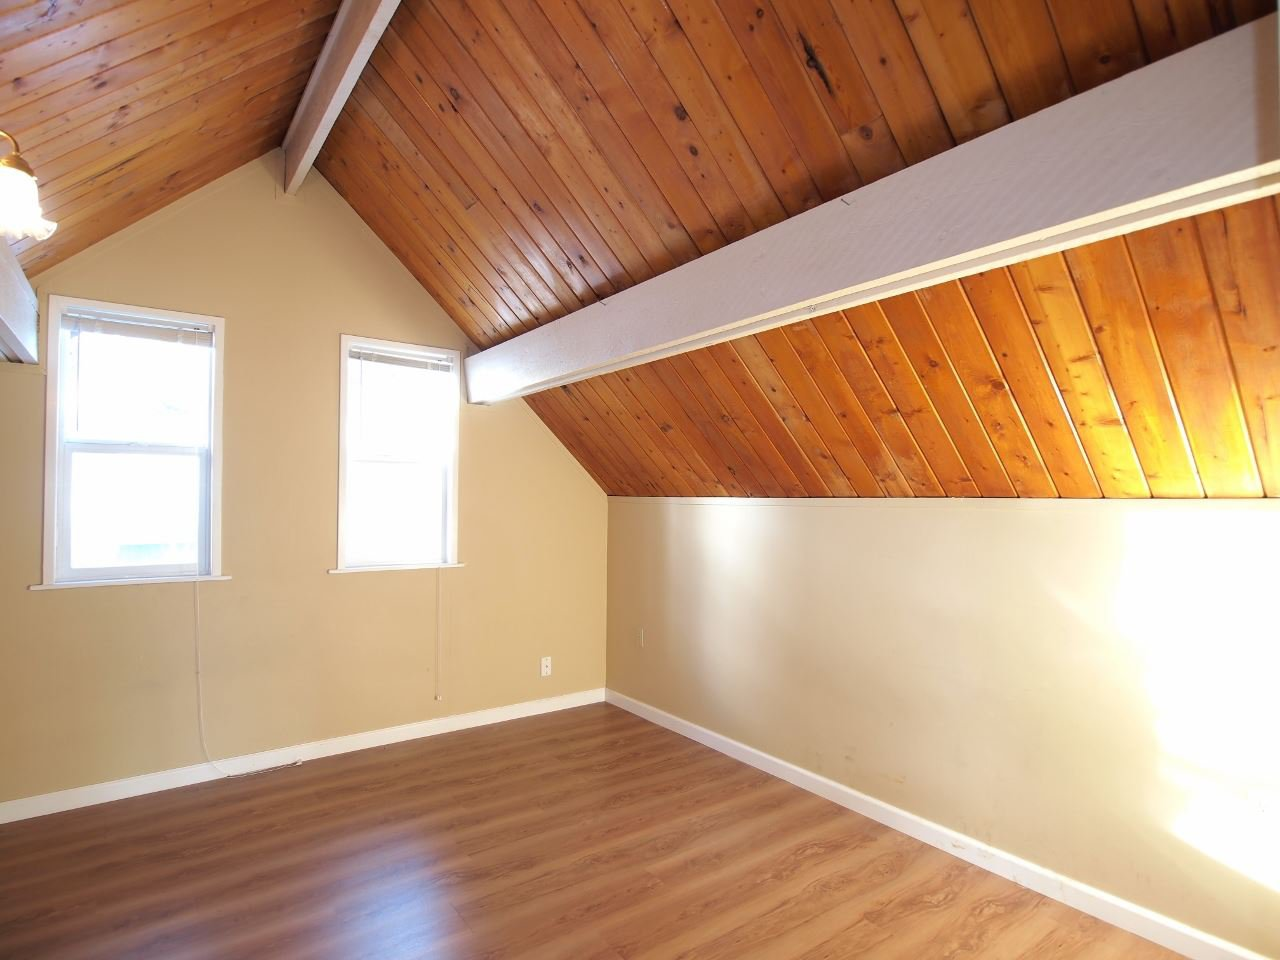 Photo 9: Photos: 4949 KYLLO Drive in 108 Mile Ranch: 108 Ranch House for sale (100 Mile House (Zone 10))  : MLS®# R2014339